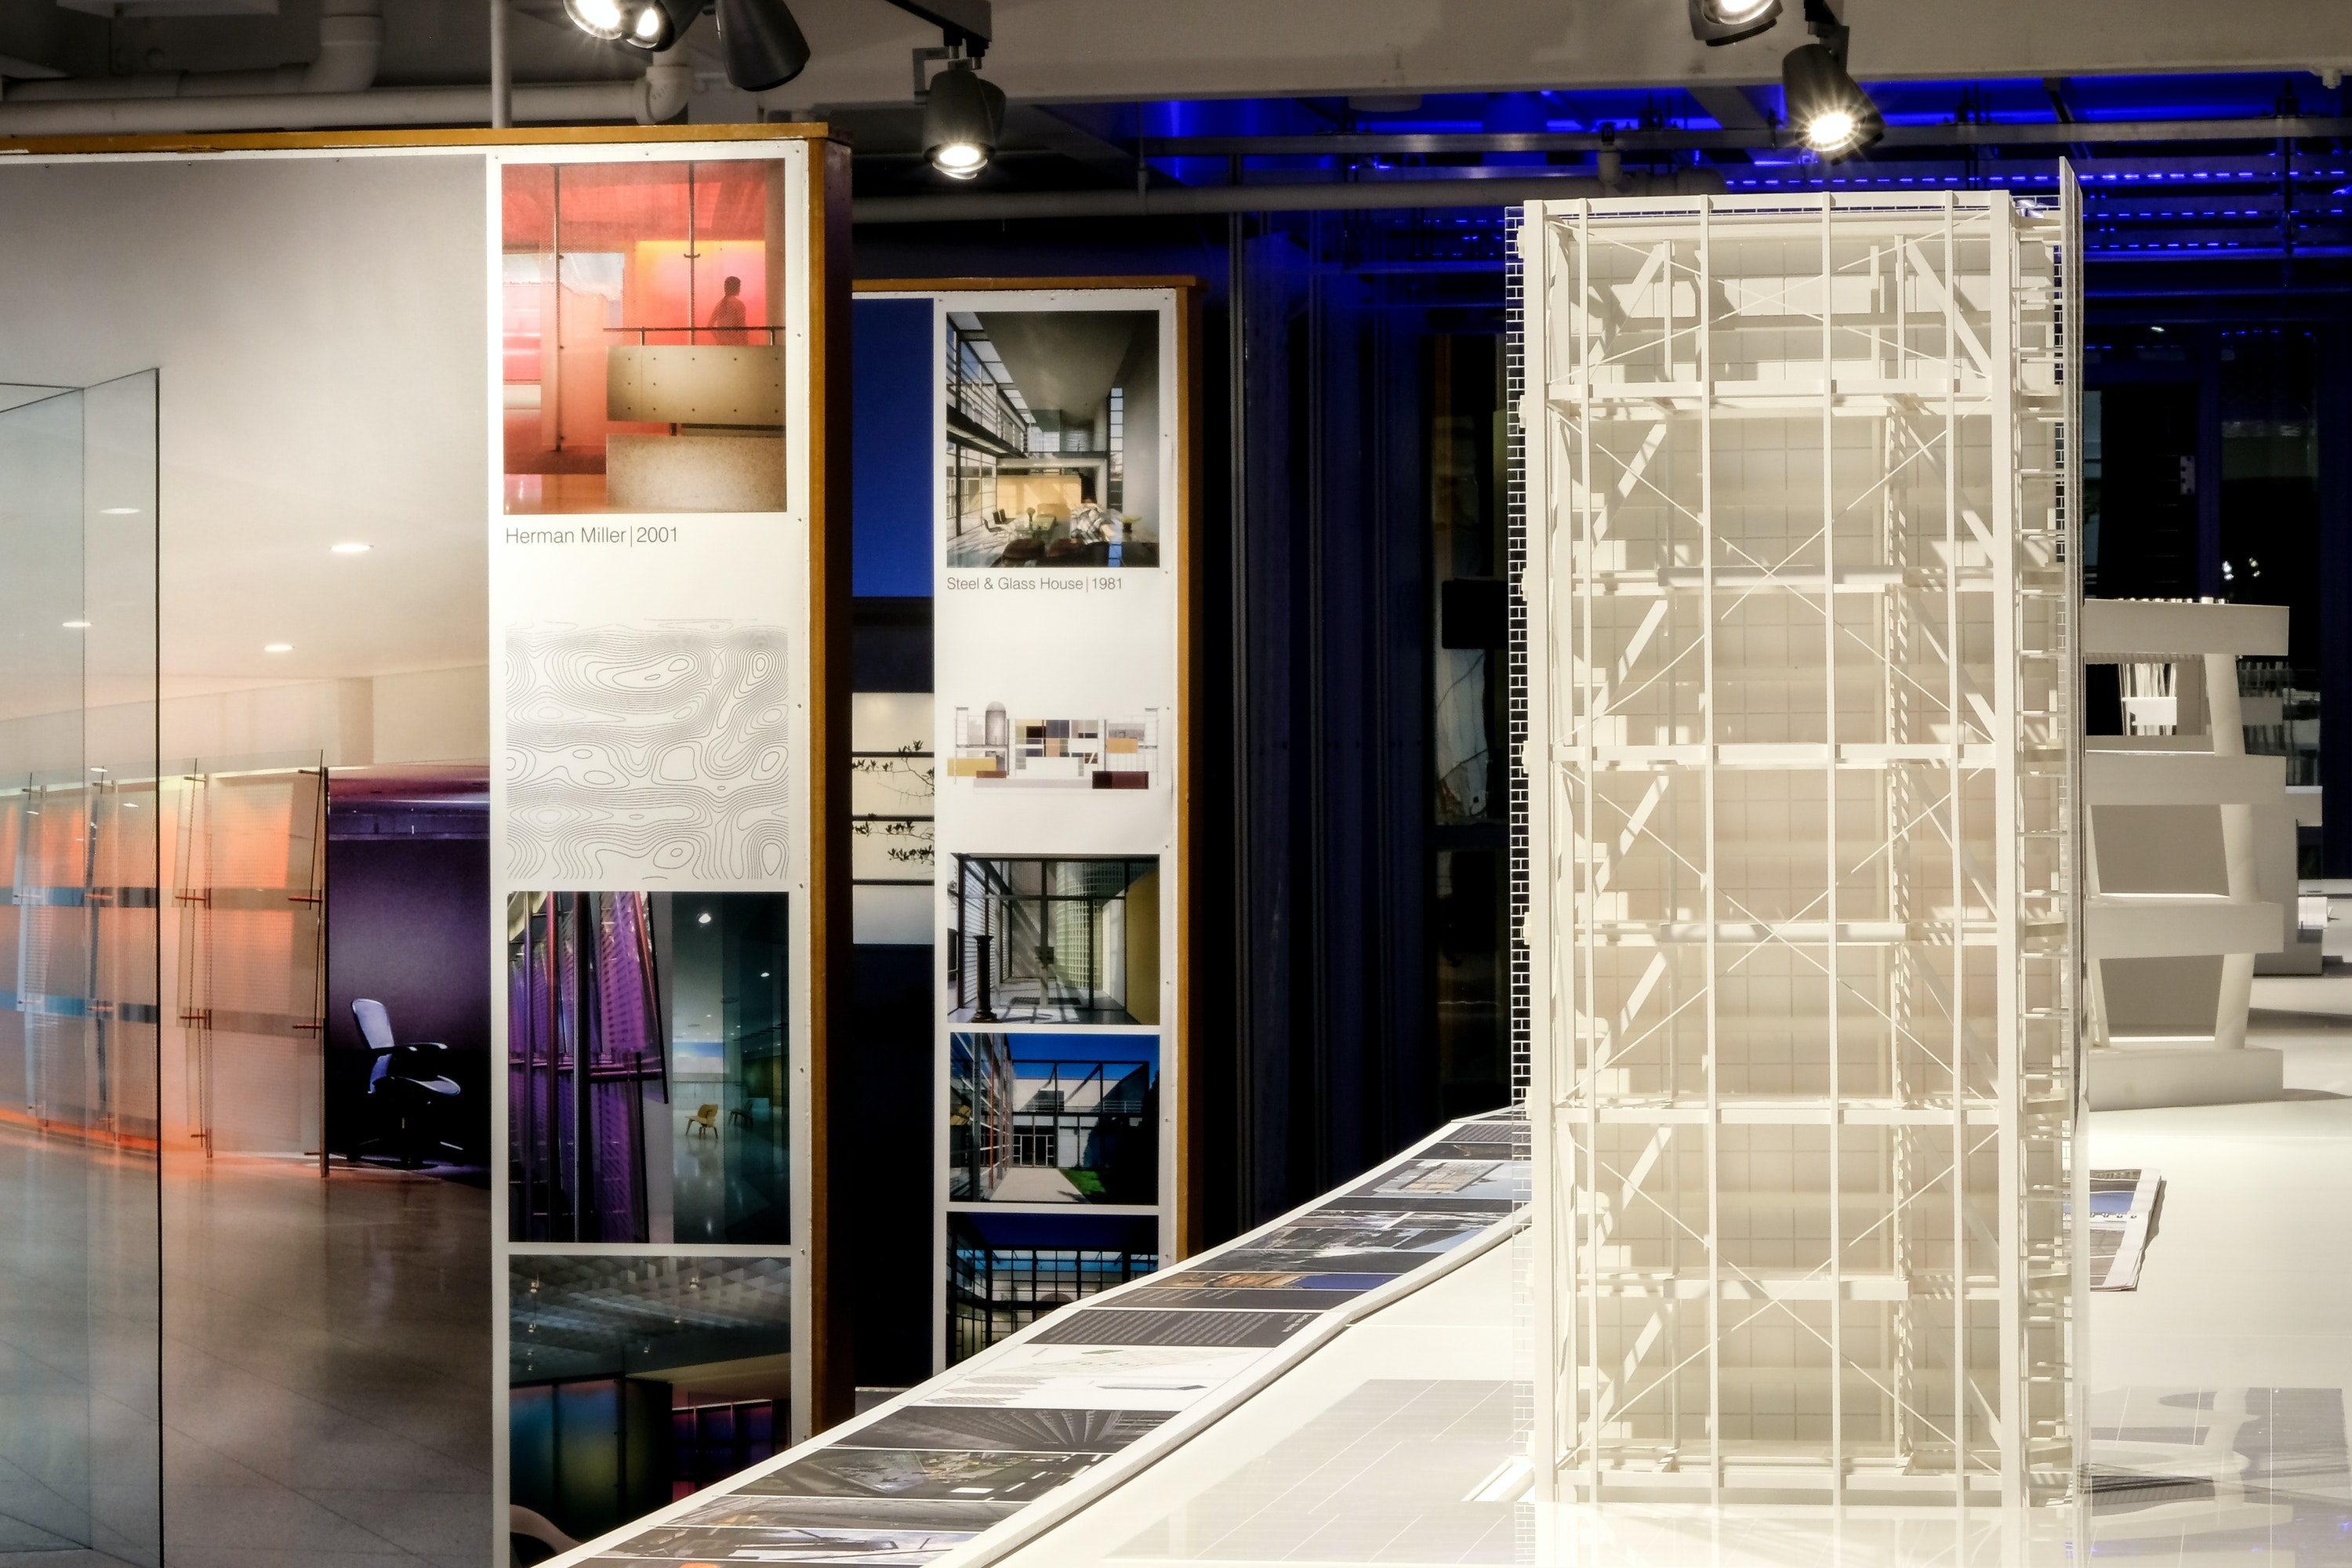 Exhibition: Making Architecture 06